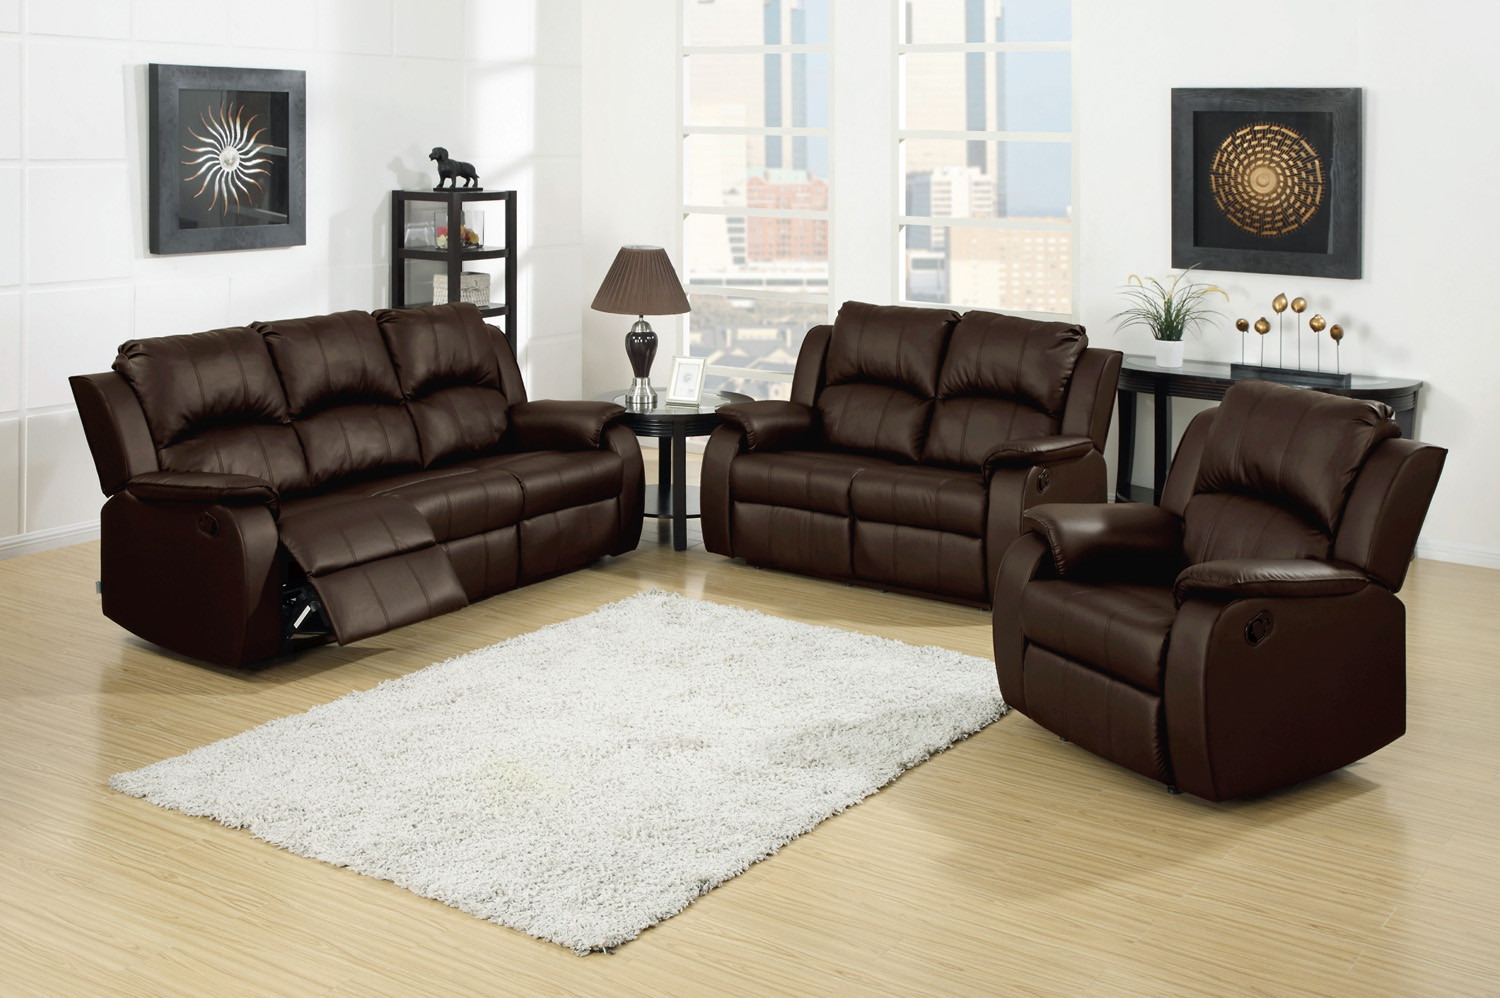 Sofa Berlin Berlin 3 Pc Leather Reclining Sofa Loveseat And Recliner